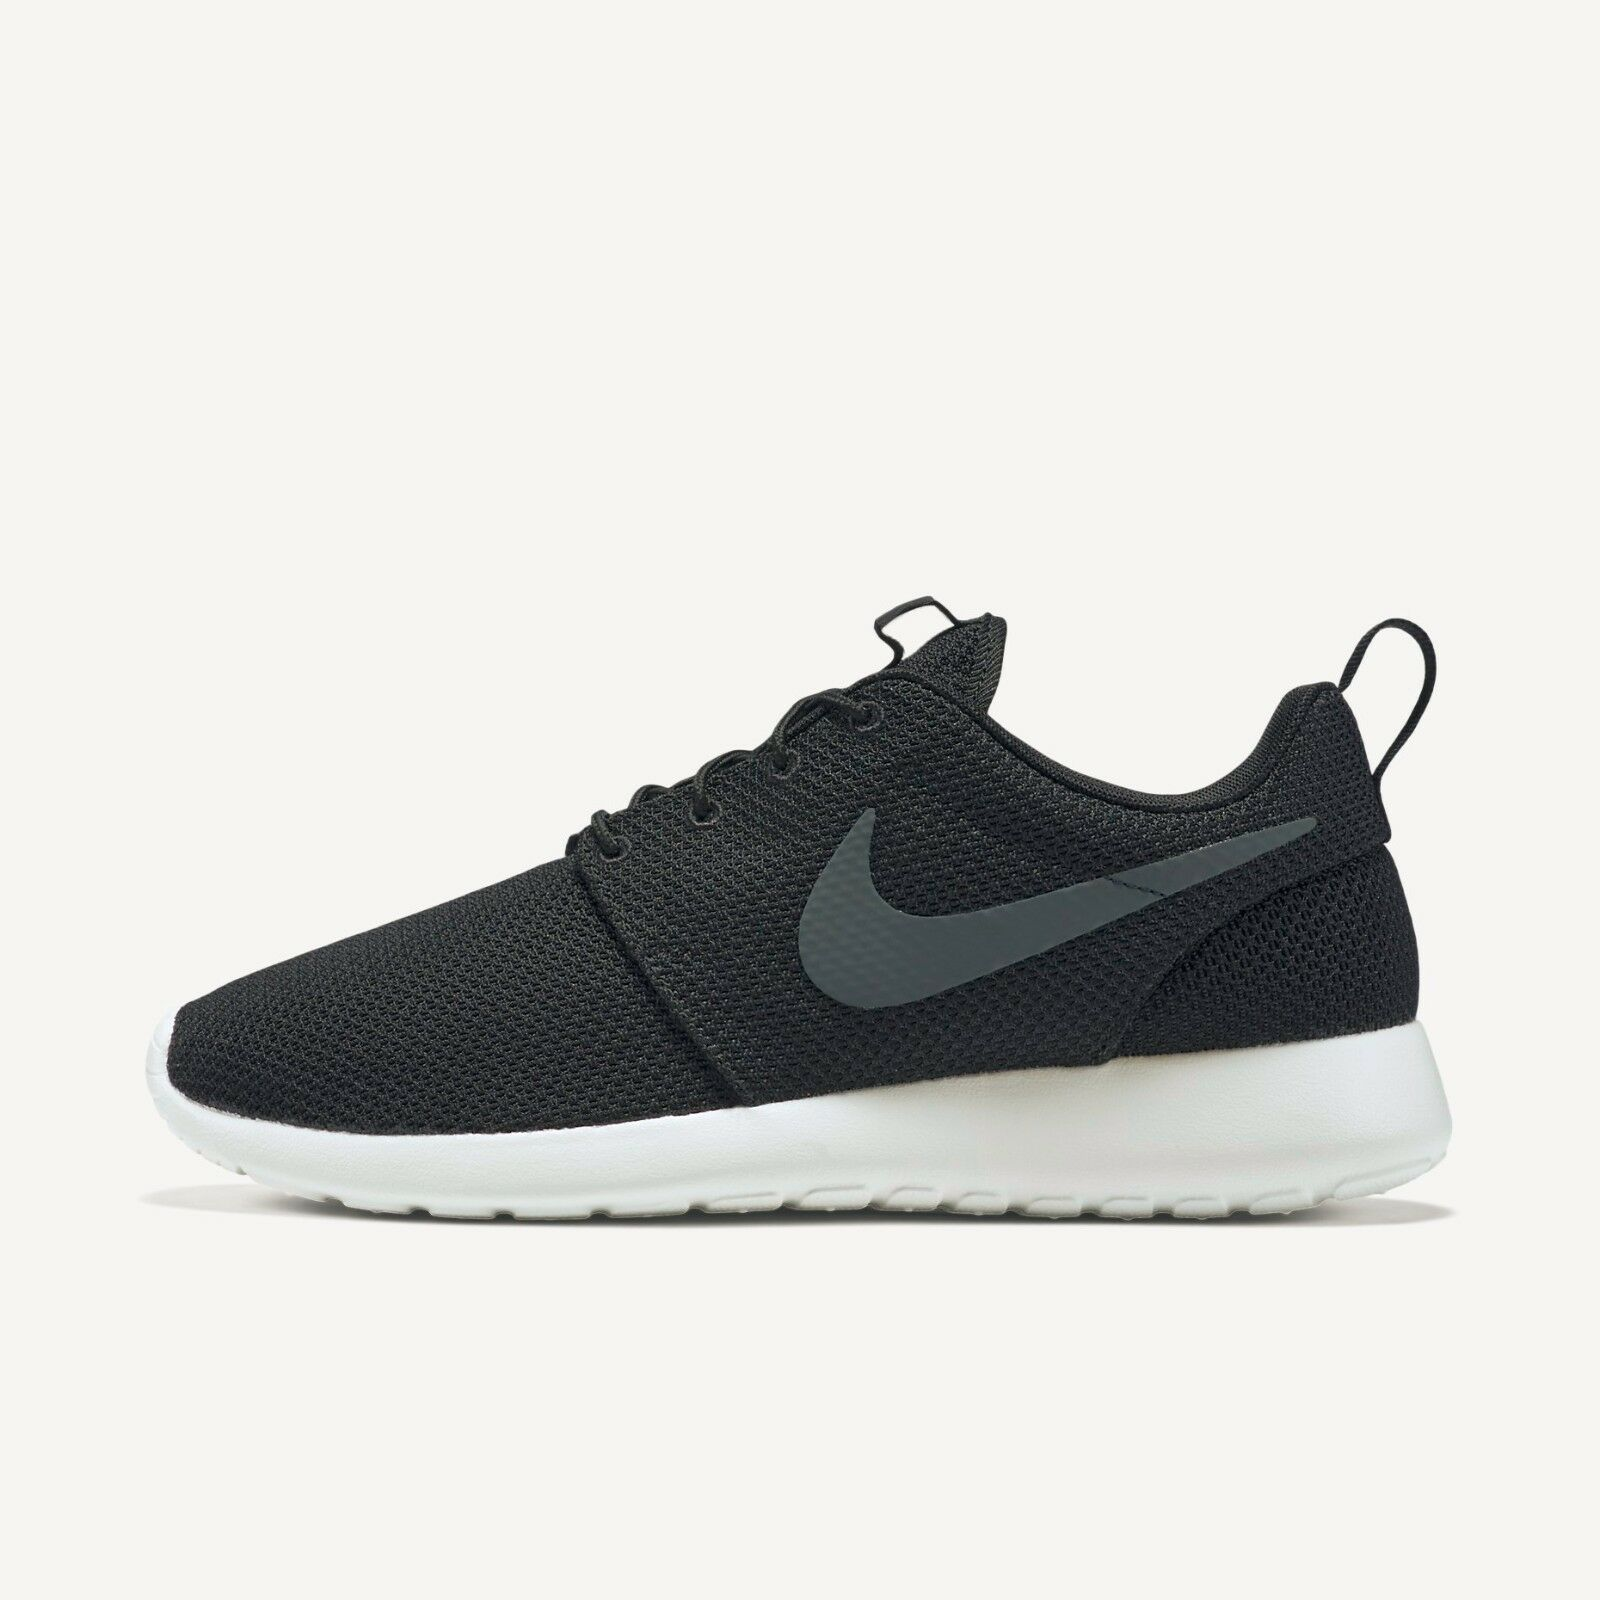 Nike Men's Roshe - One Shoes - Roshe Black - Size 8.5 f754e3